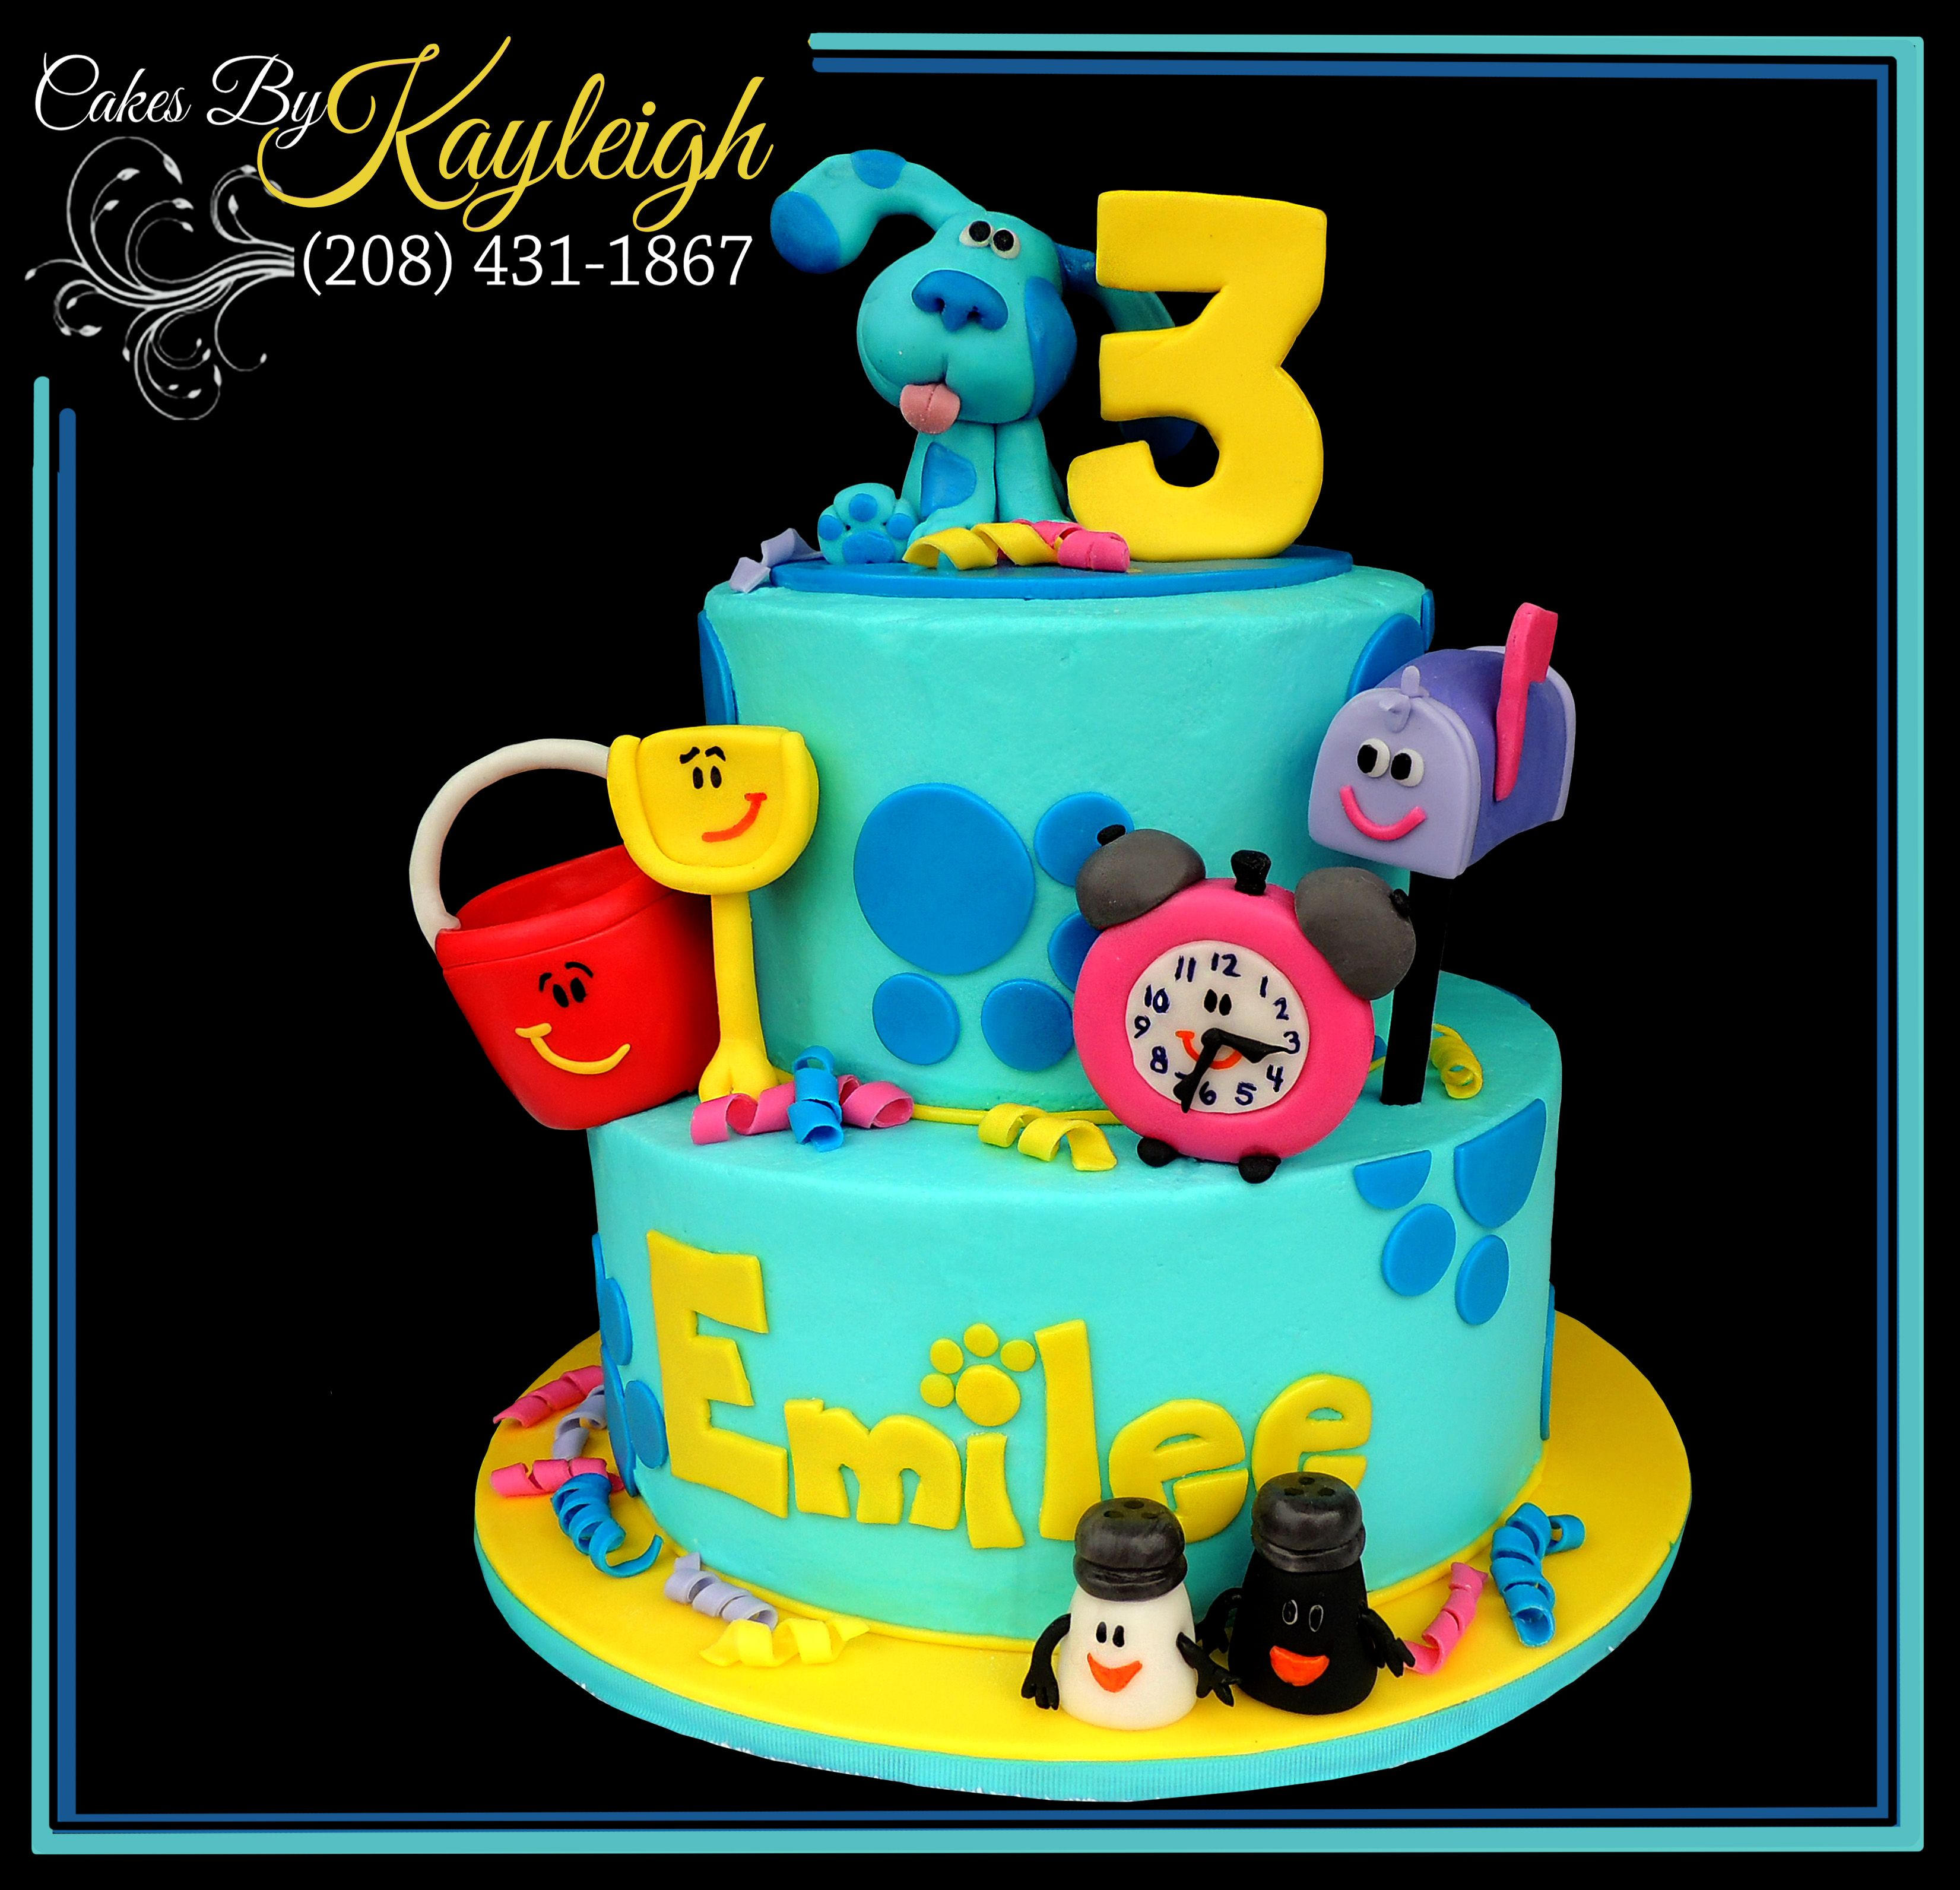 blues clues birthday cake this adorable cake is perfect for any